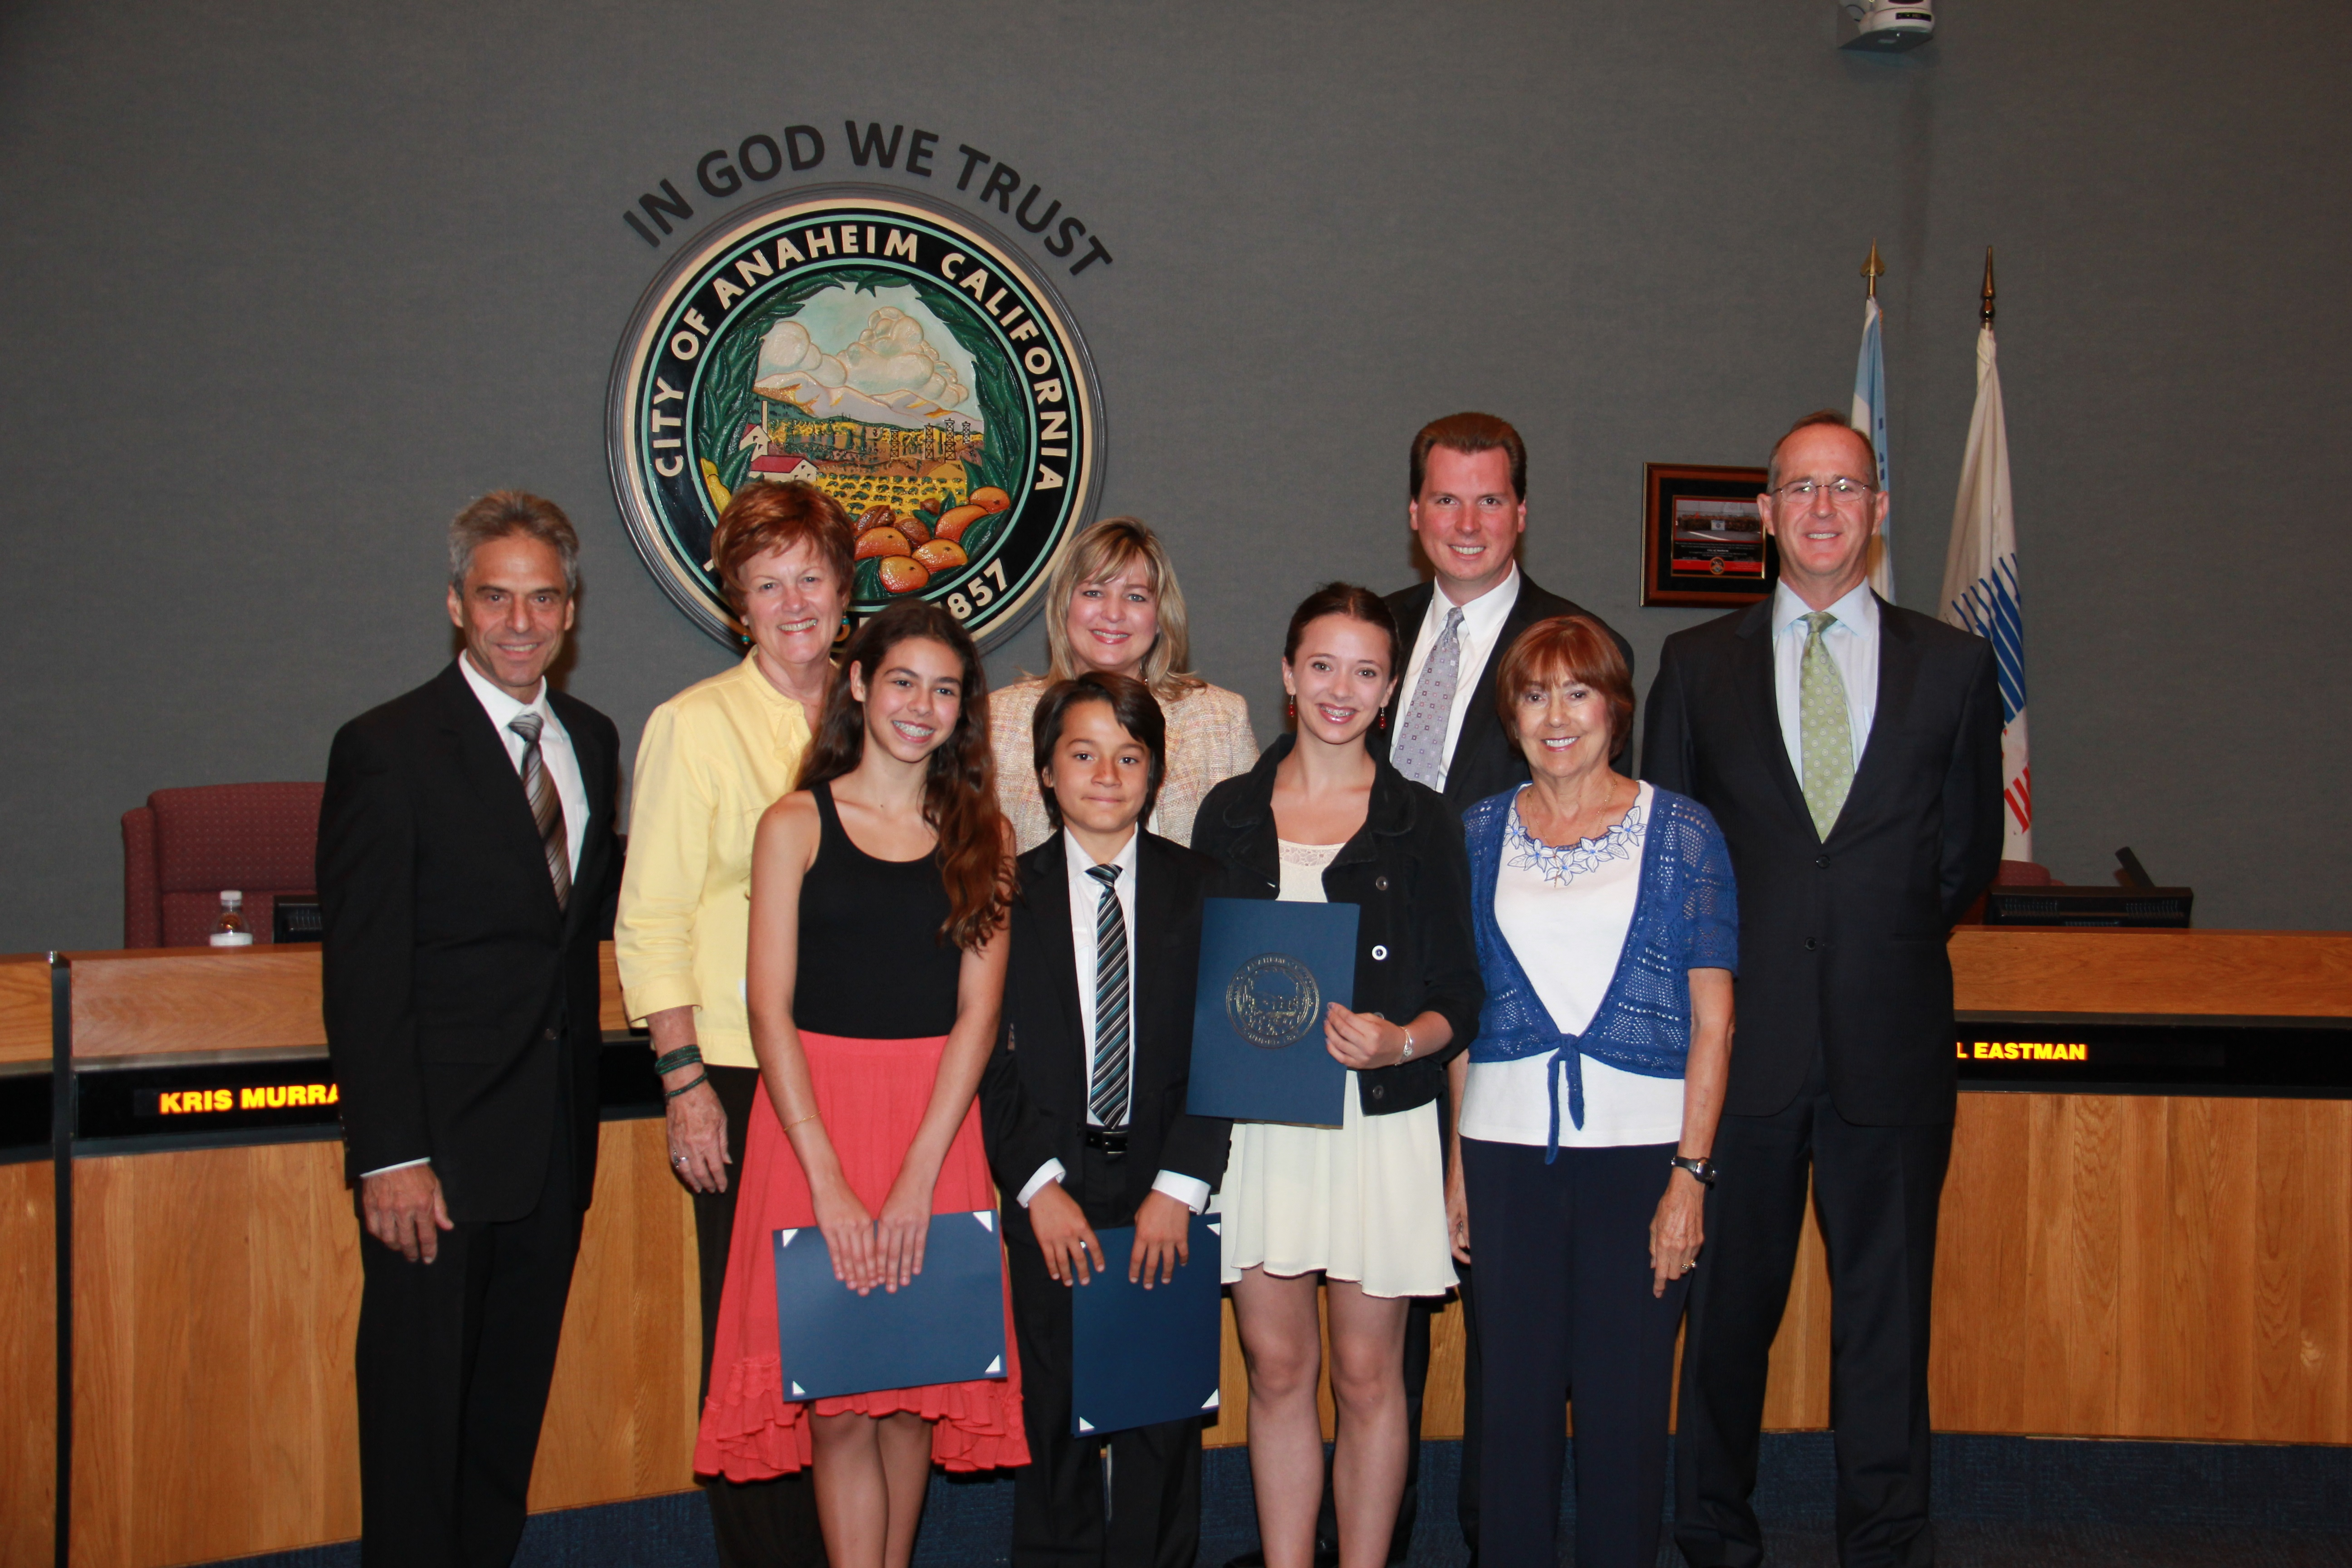 Two young girls and a young boy receiving awards from the City Council